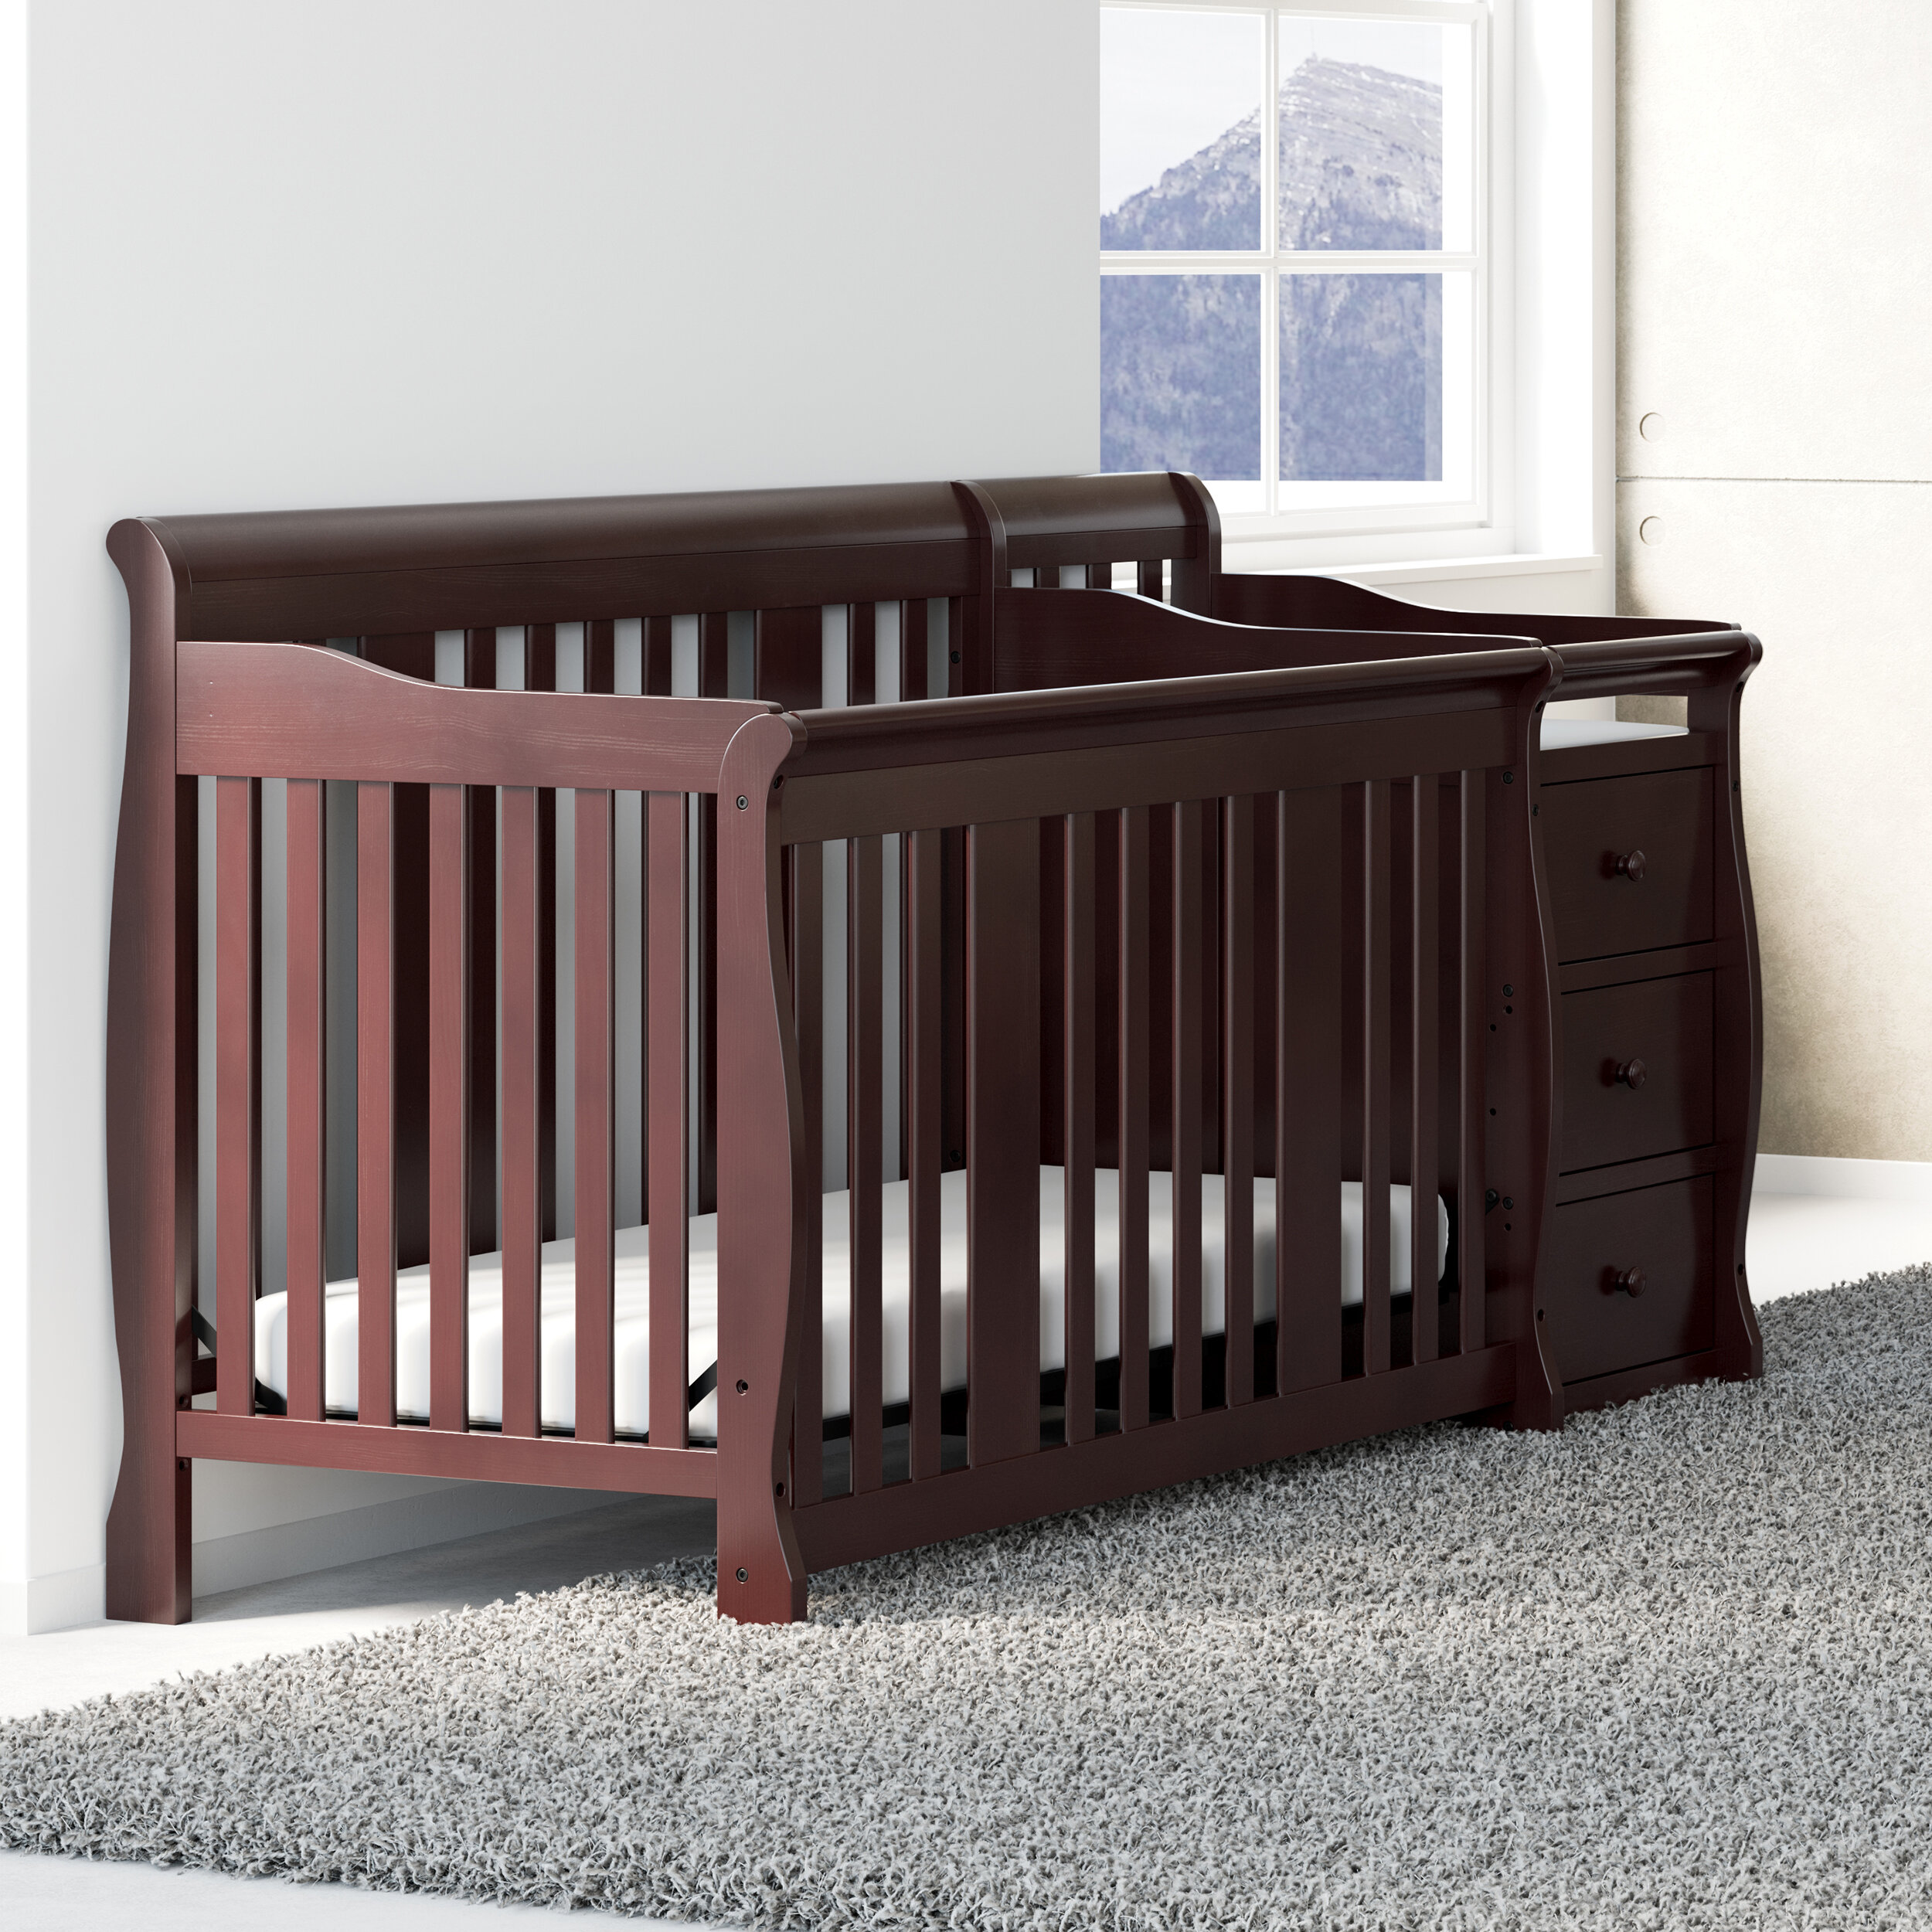 Storkcraft Portofino 4 In 1 Convertible Crib And Changer Reviews Wayfair